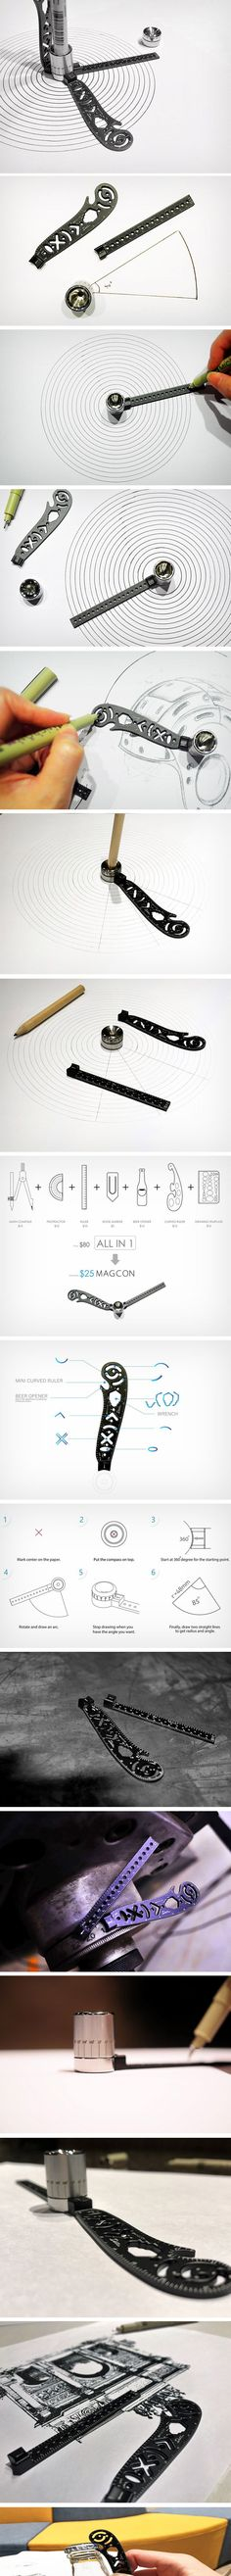 270 Best Product Design images in 2019 | Fountain Pens, Aesthetics